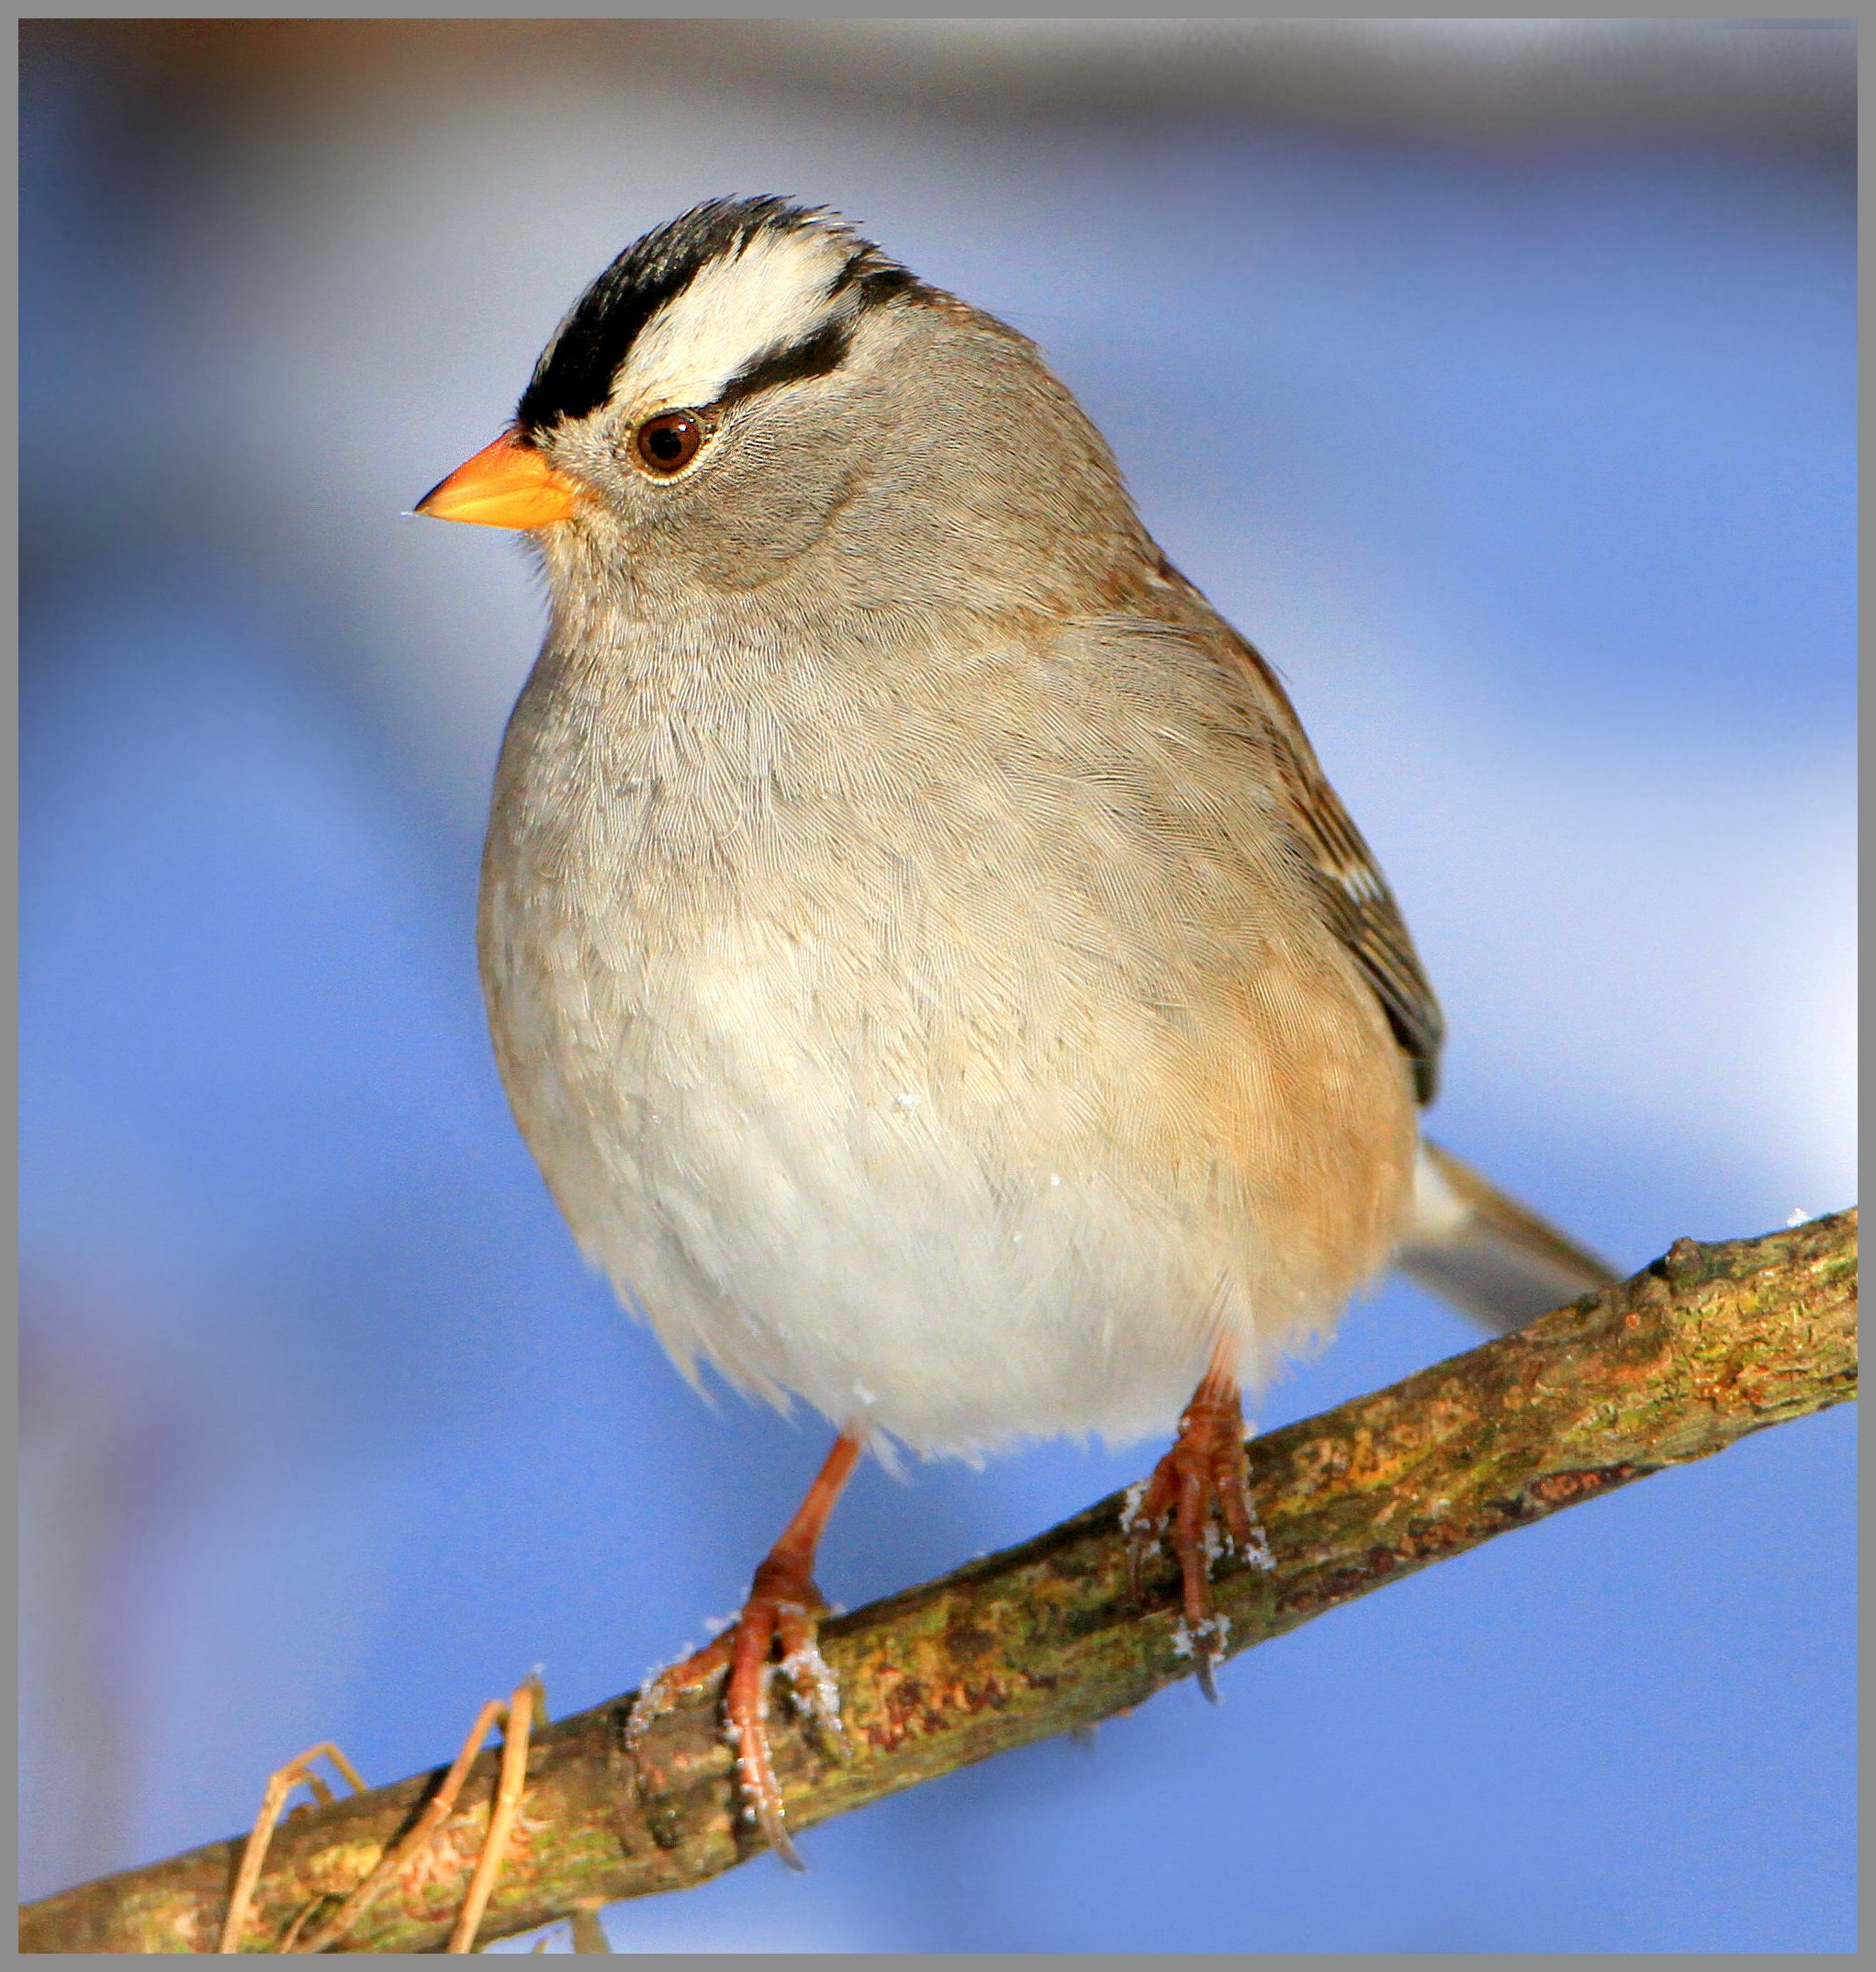 White-crowned sparrow, photo by Nigel